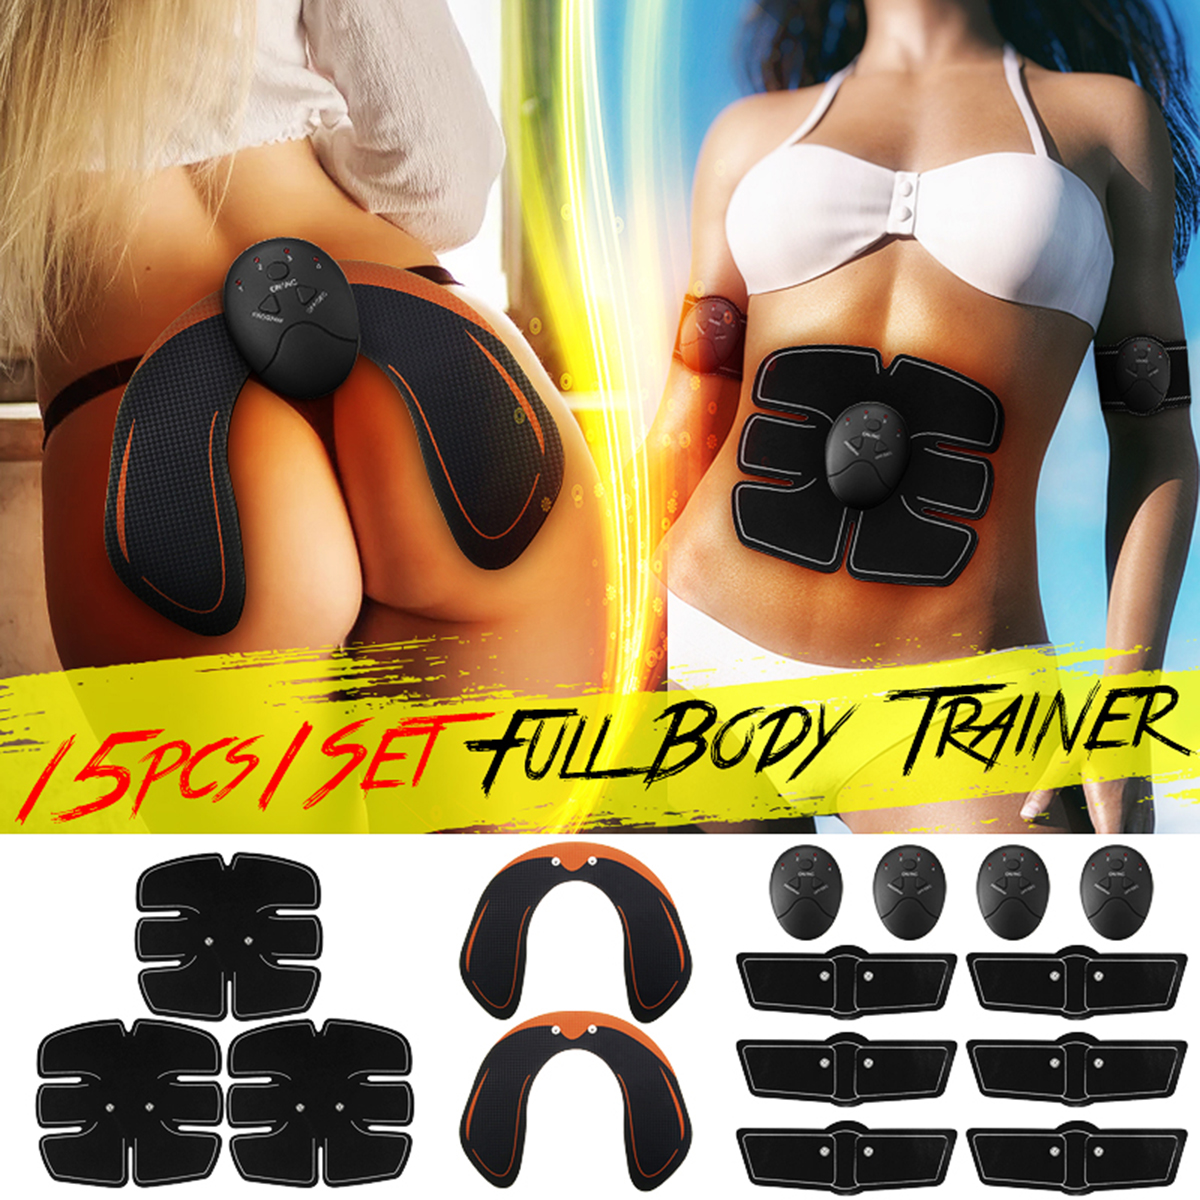 KIFIT EMS Smart Household Hip Trainer Ass Builder Buttock Tighter Lifter Massager Electric Vibration Muscle Stimulator ems hips trainer